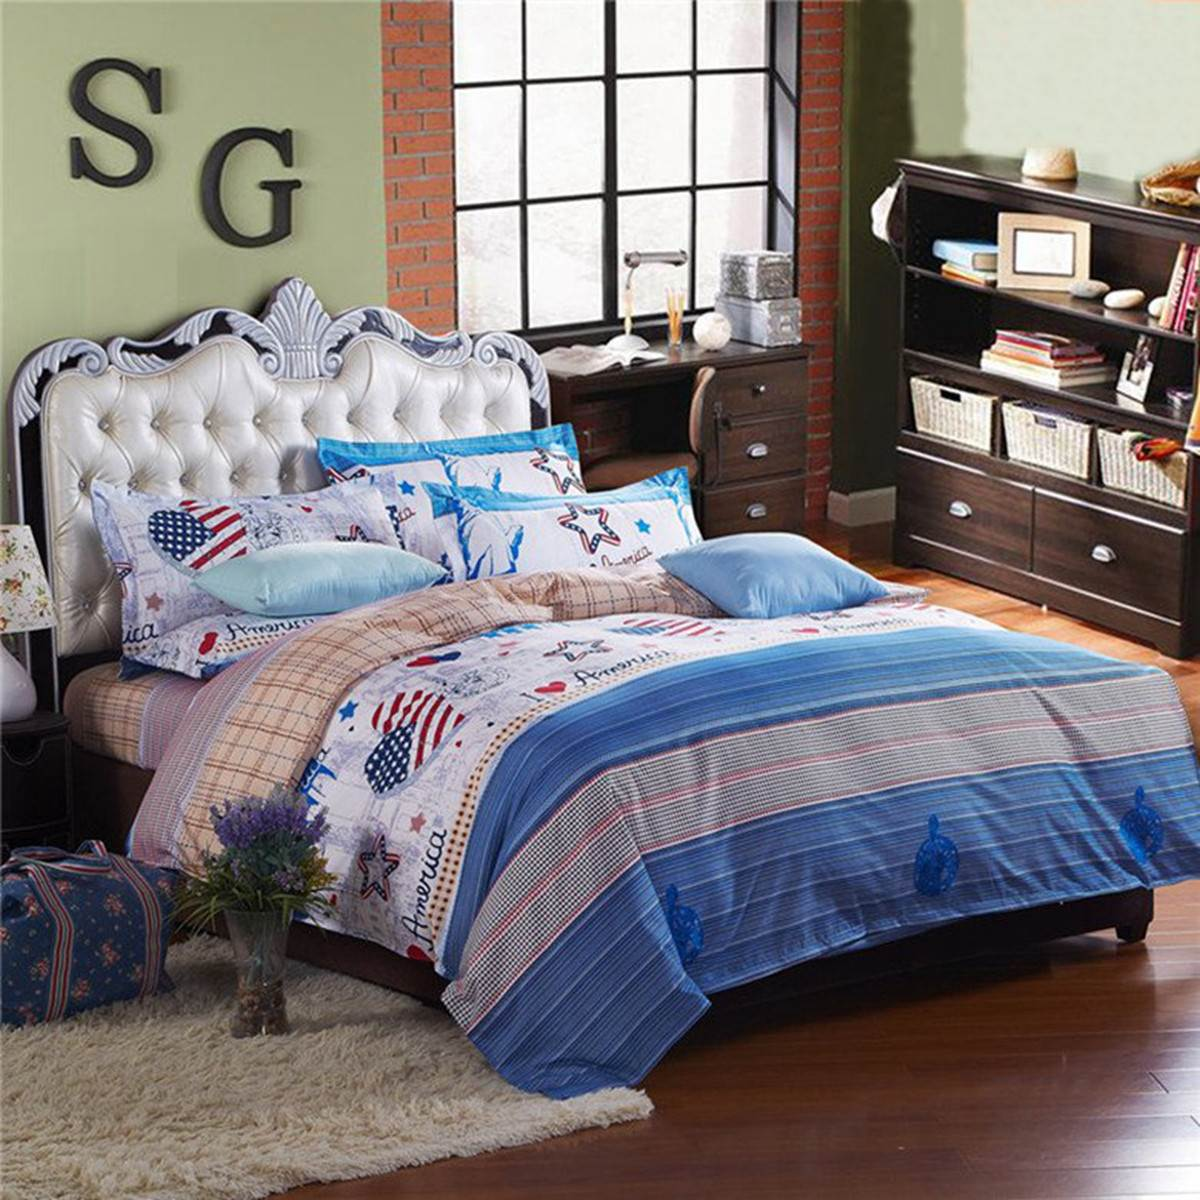 Merveilleux Fashion USA Heart Printed Bedding Sets American Party Single Double King  Size Polyester Quilt Duvet Cover Pillowcases Bed Sheet In Bedding Sets From  Home ...